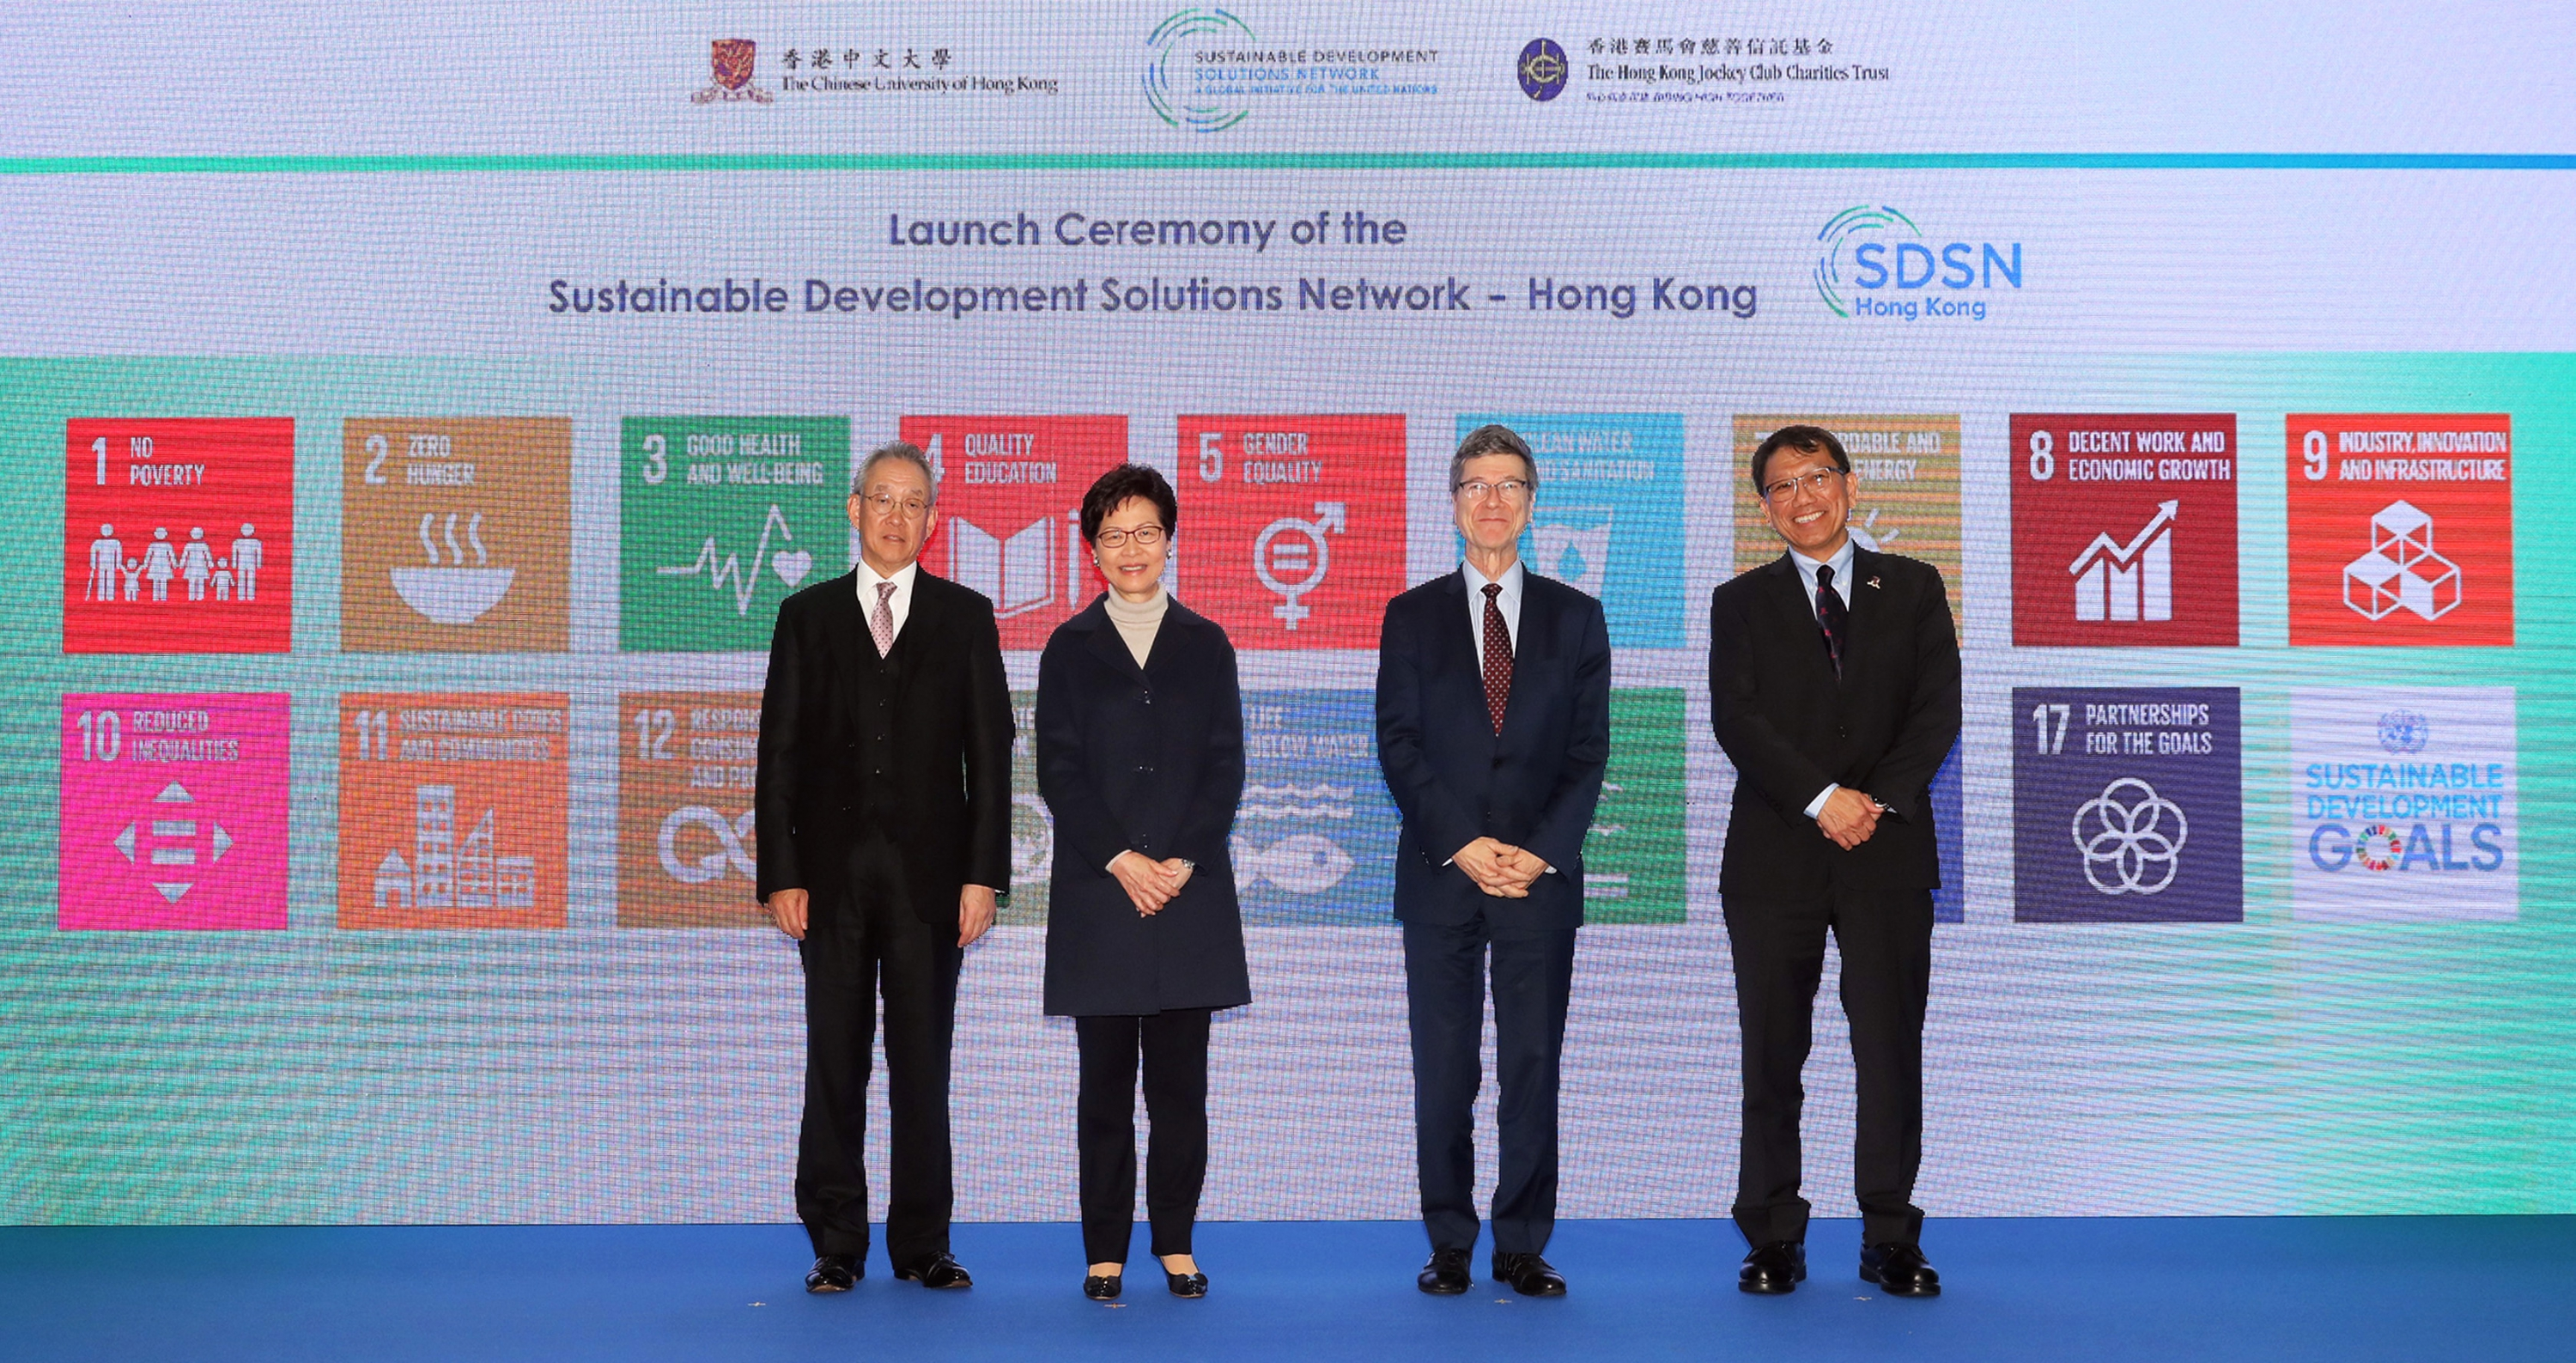 Hong Kong's Chief Executive Carrie Lam (2nd left) officiates at the launch ceremony for SDSN Hong Kong